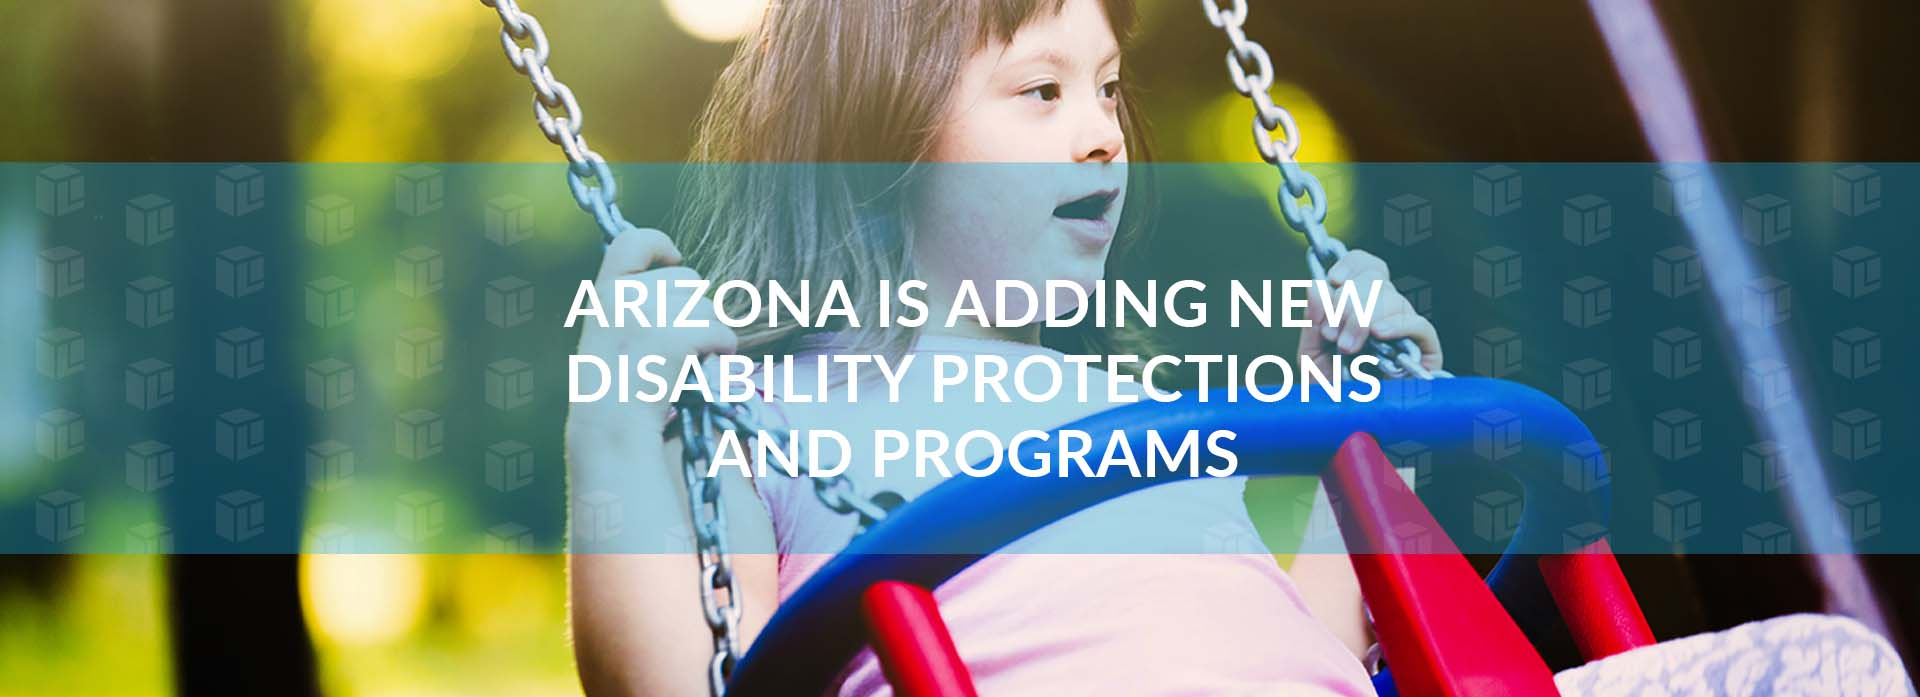 Arizona Is Adding New Disability Protections And Programs